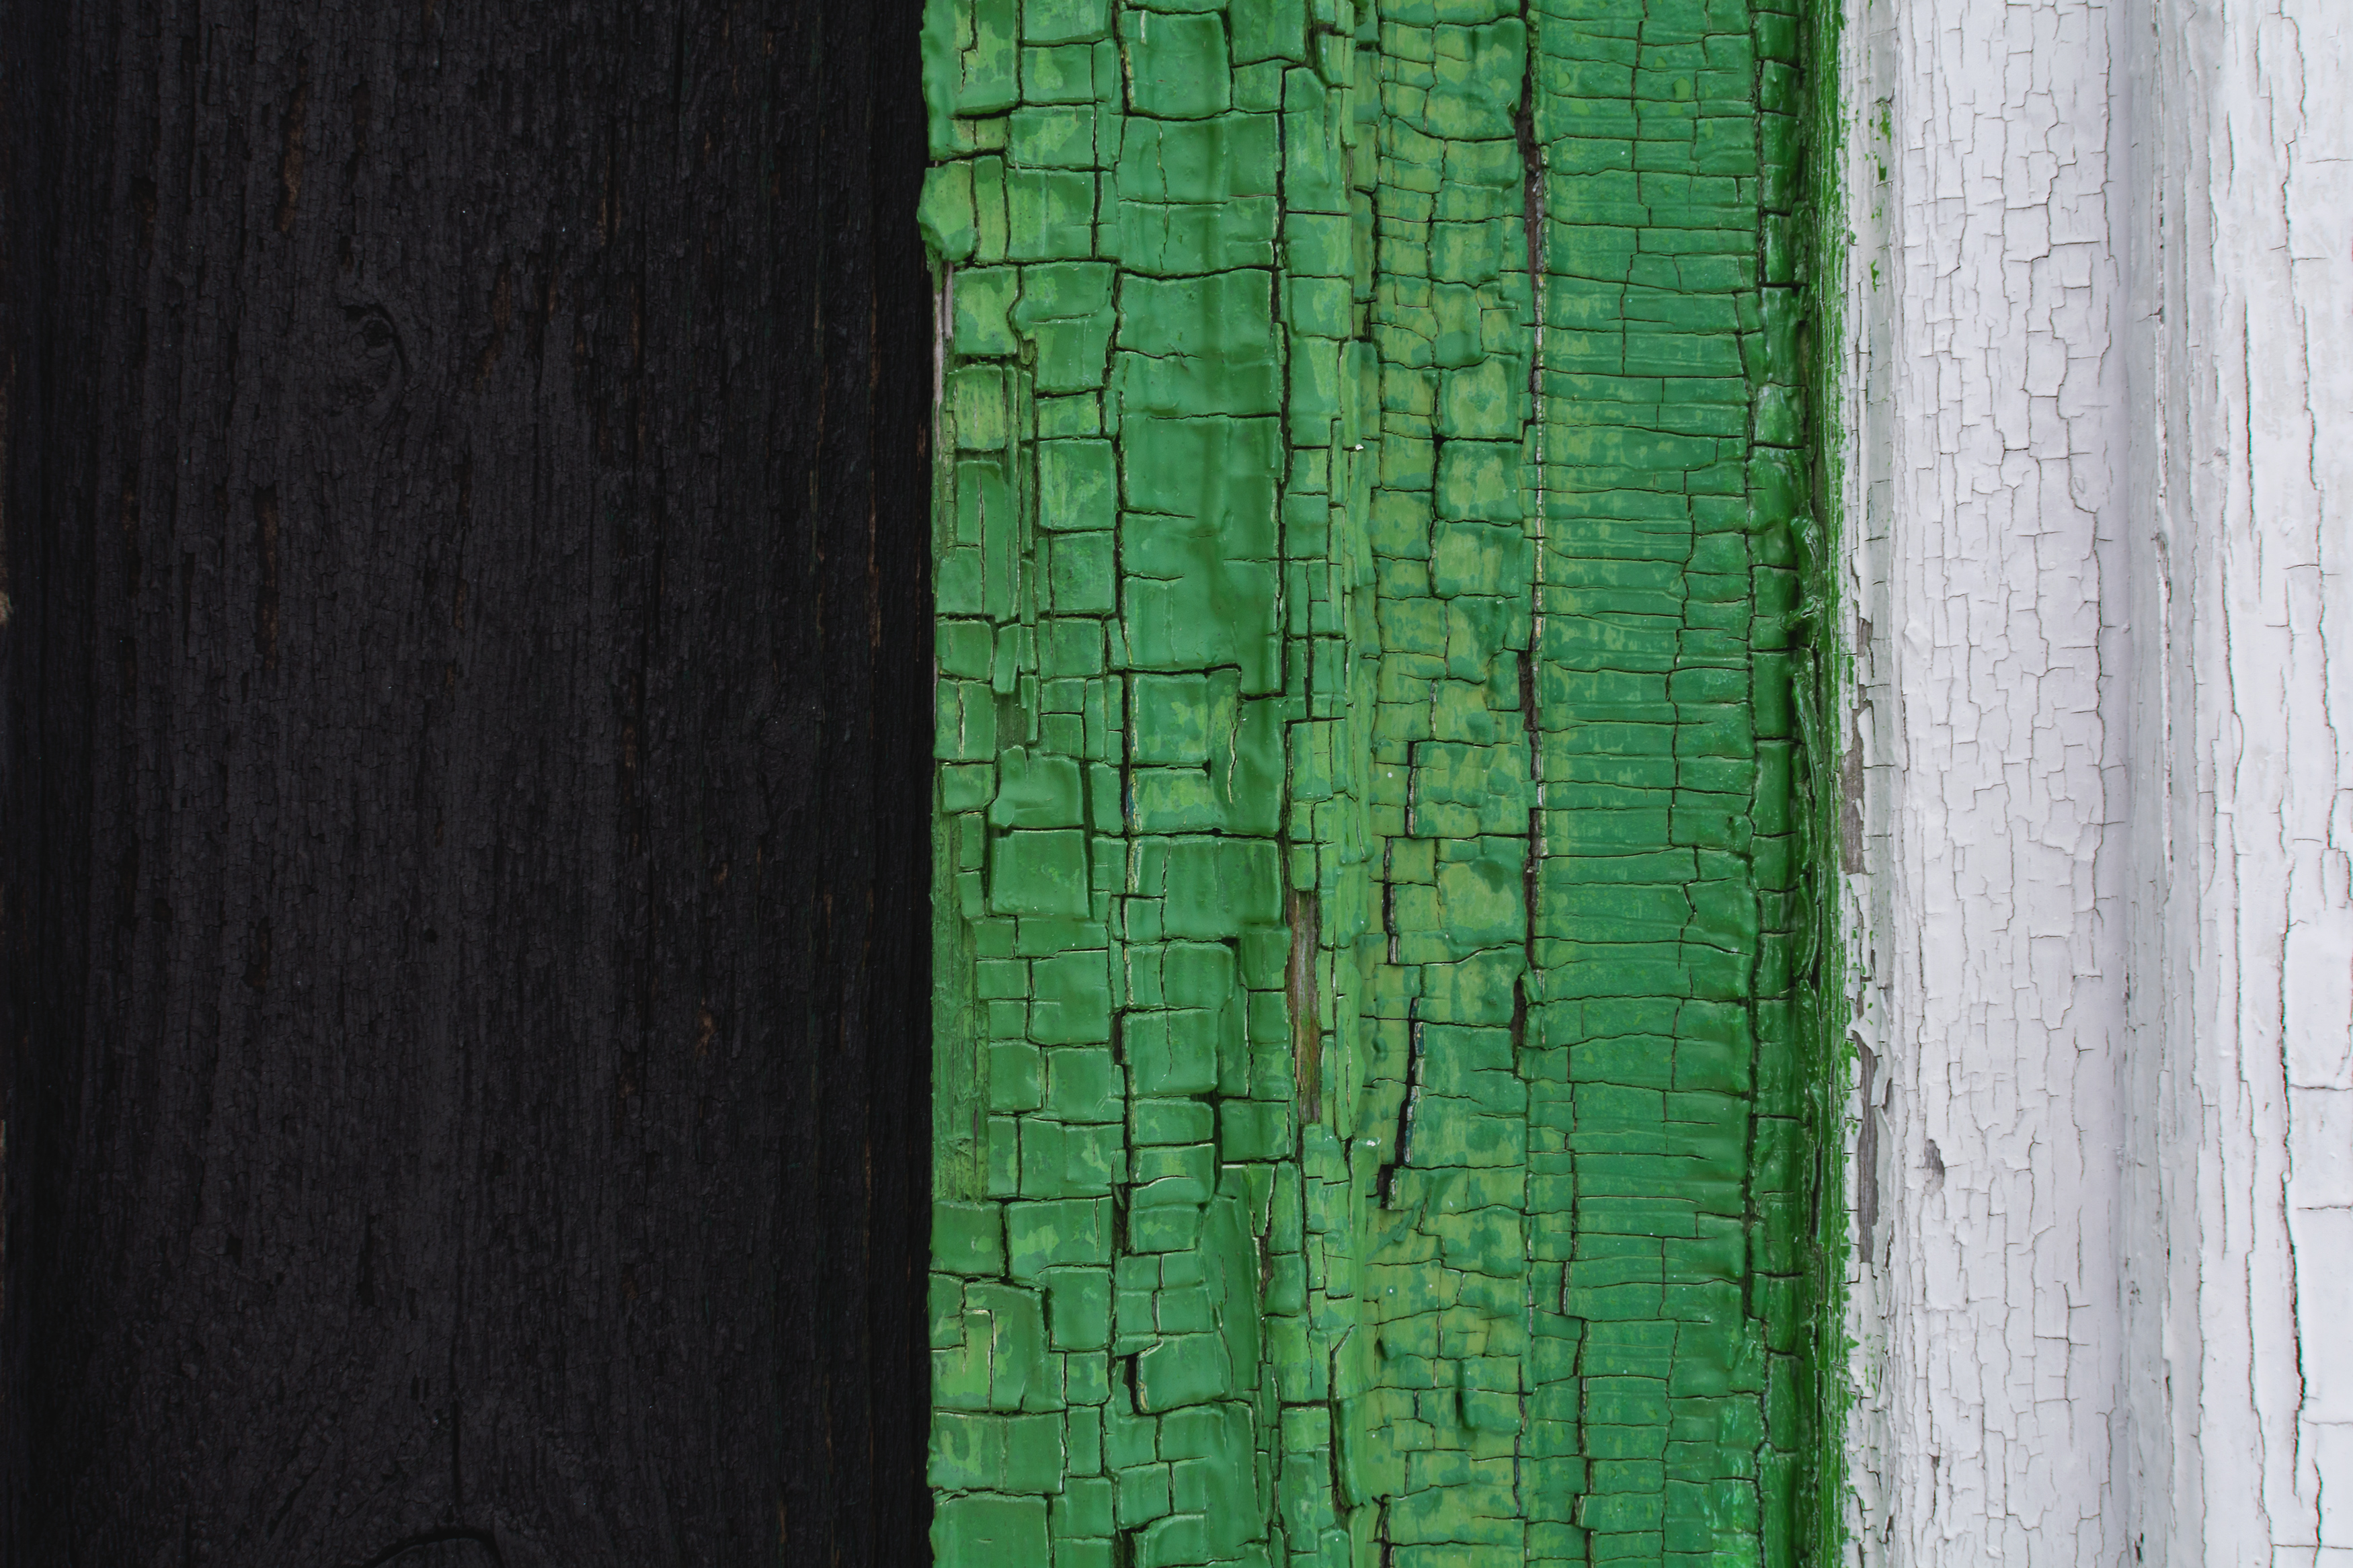 Free Image: Cracked Paint on Wood | Libreshot Public Domain Photos